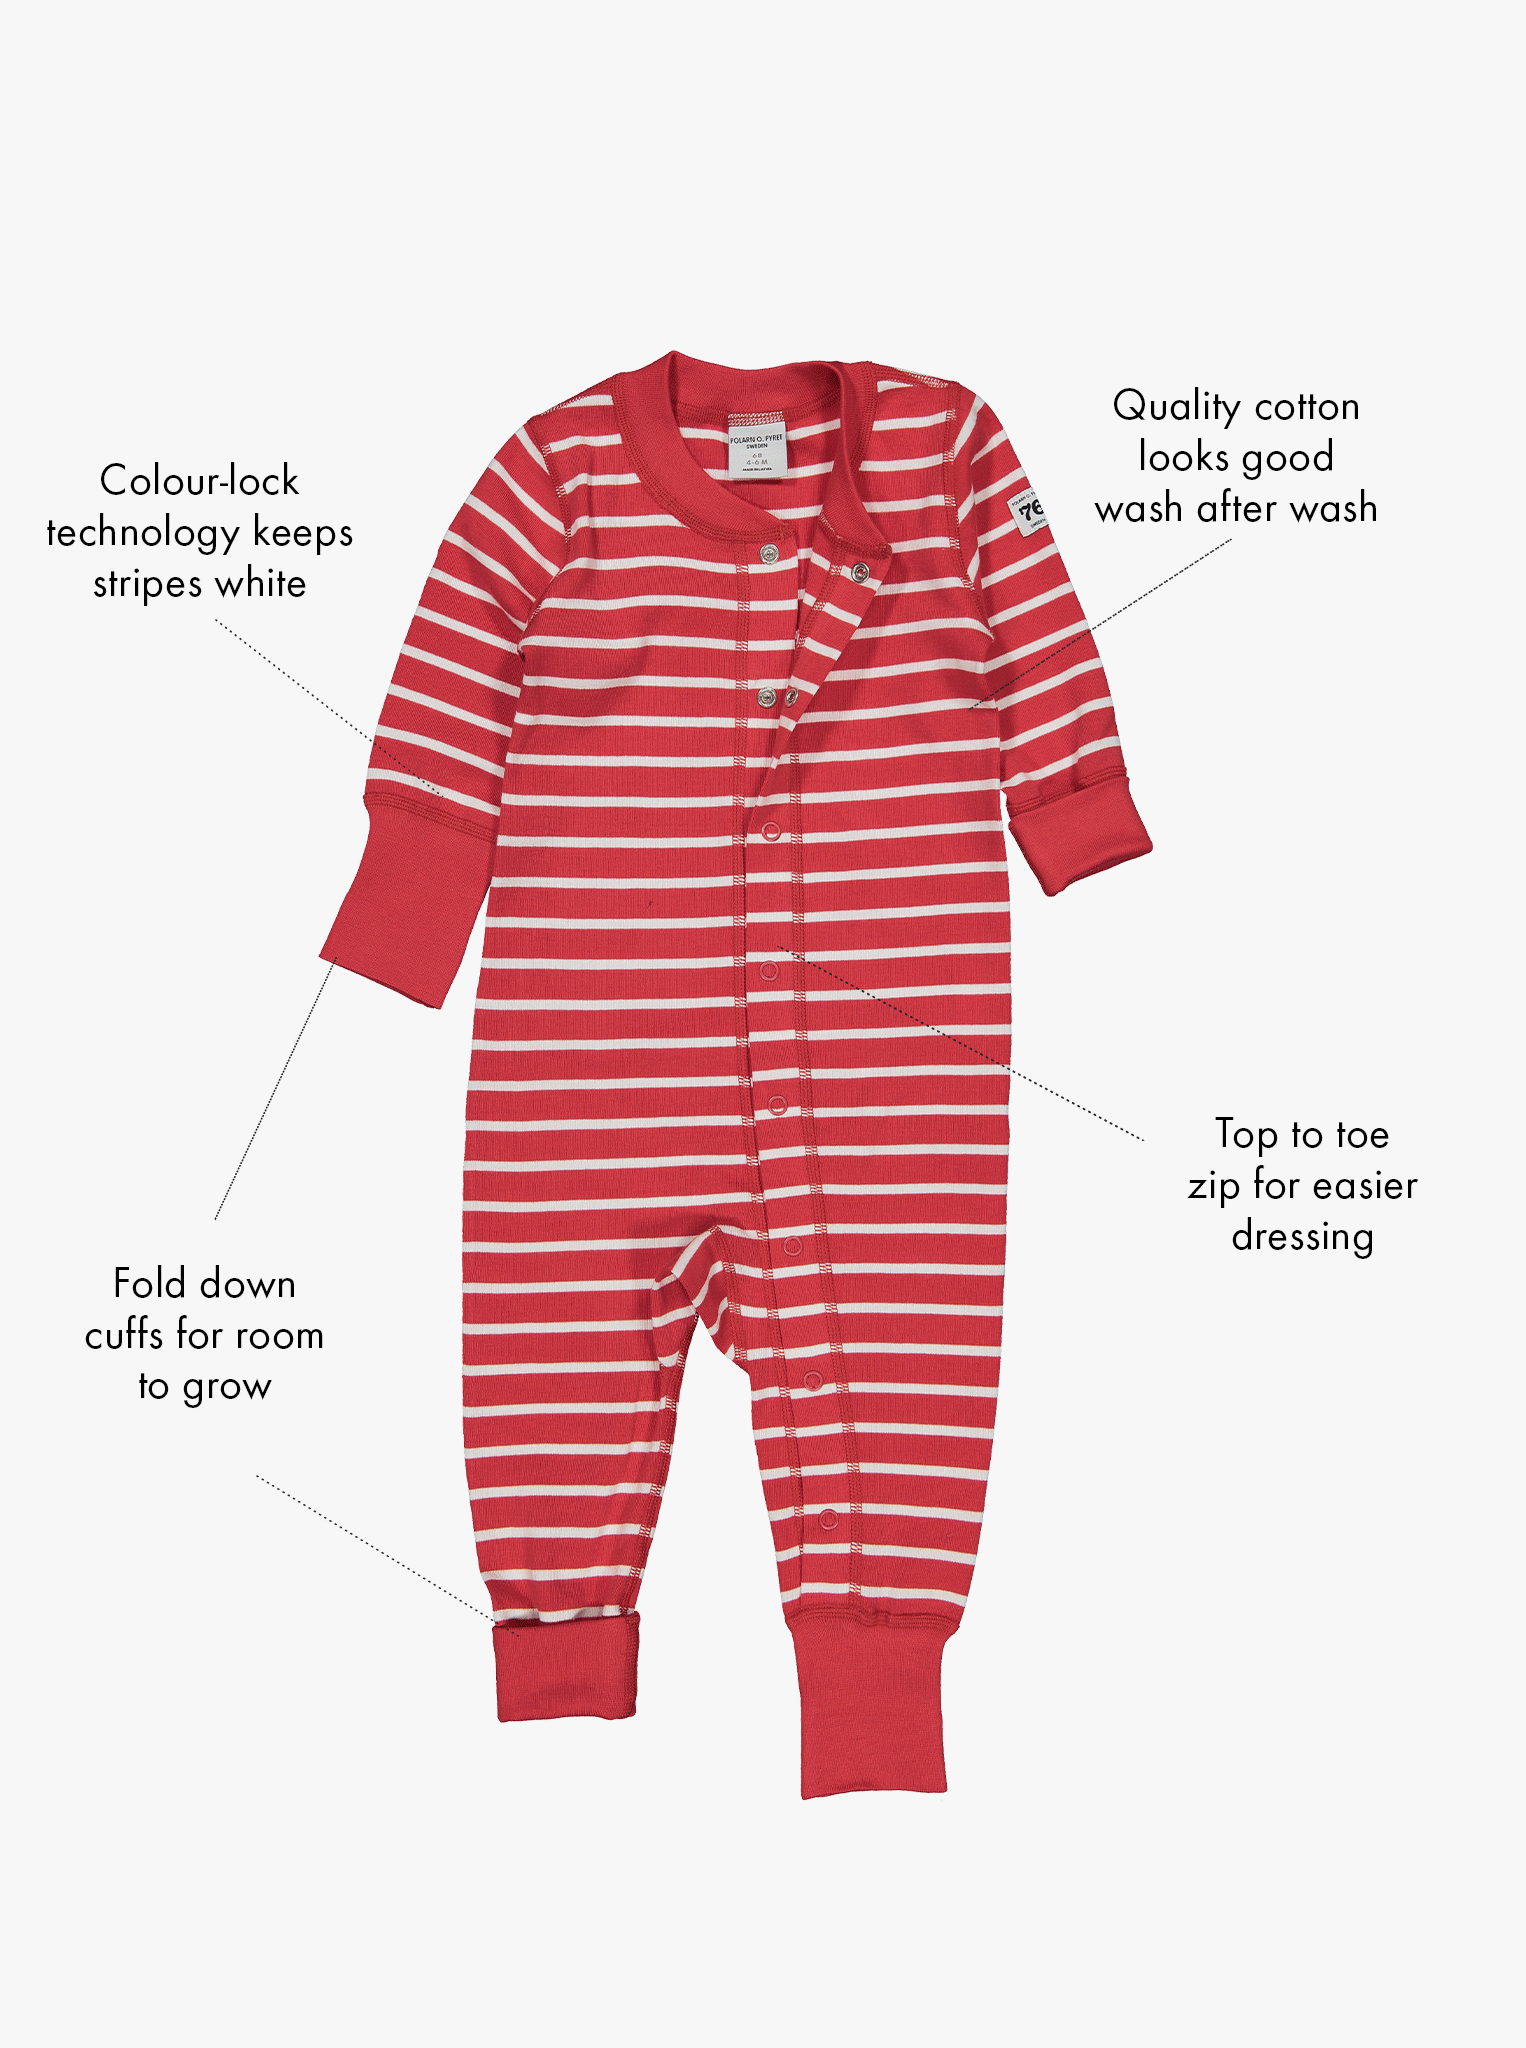 Whole body view of the red and white stripe print baby all-in-one, with features shown as text labels on the sides.